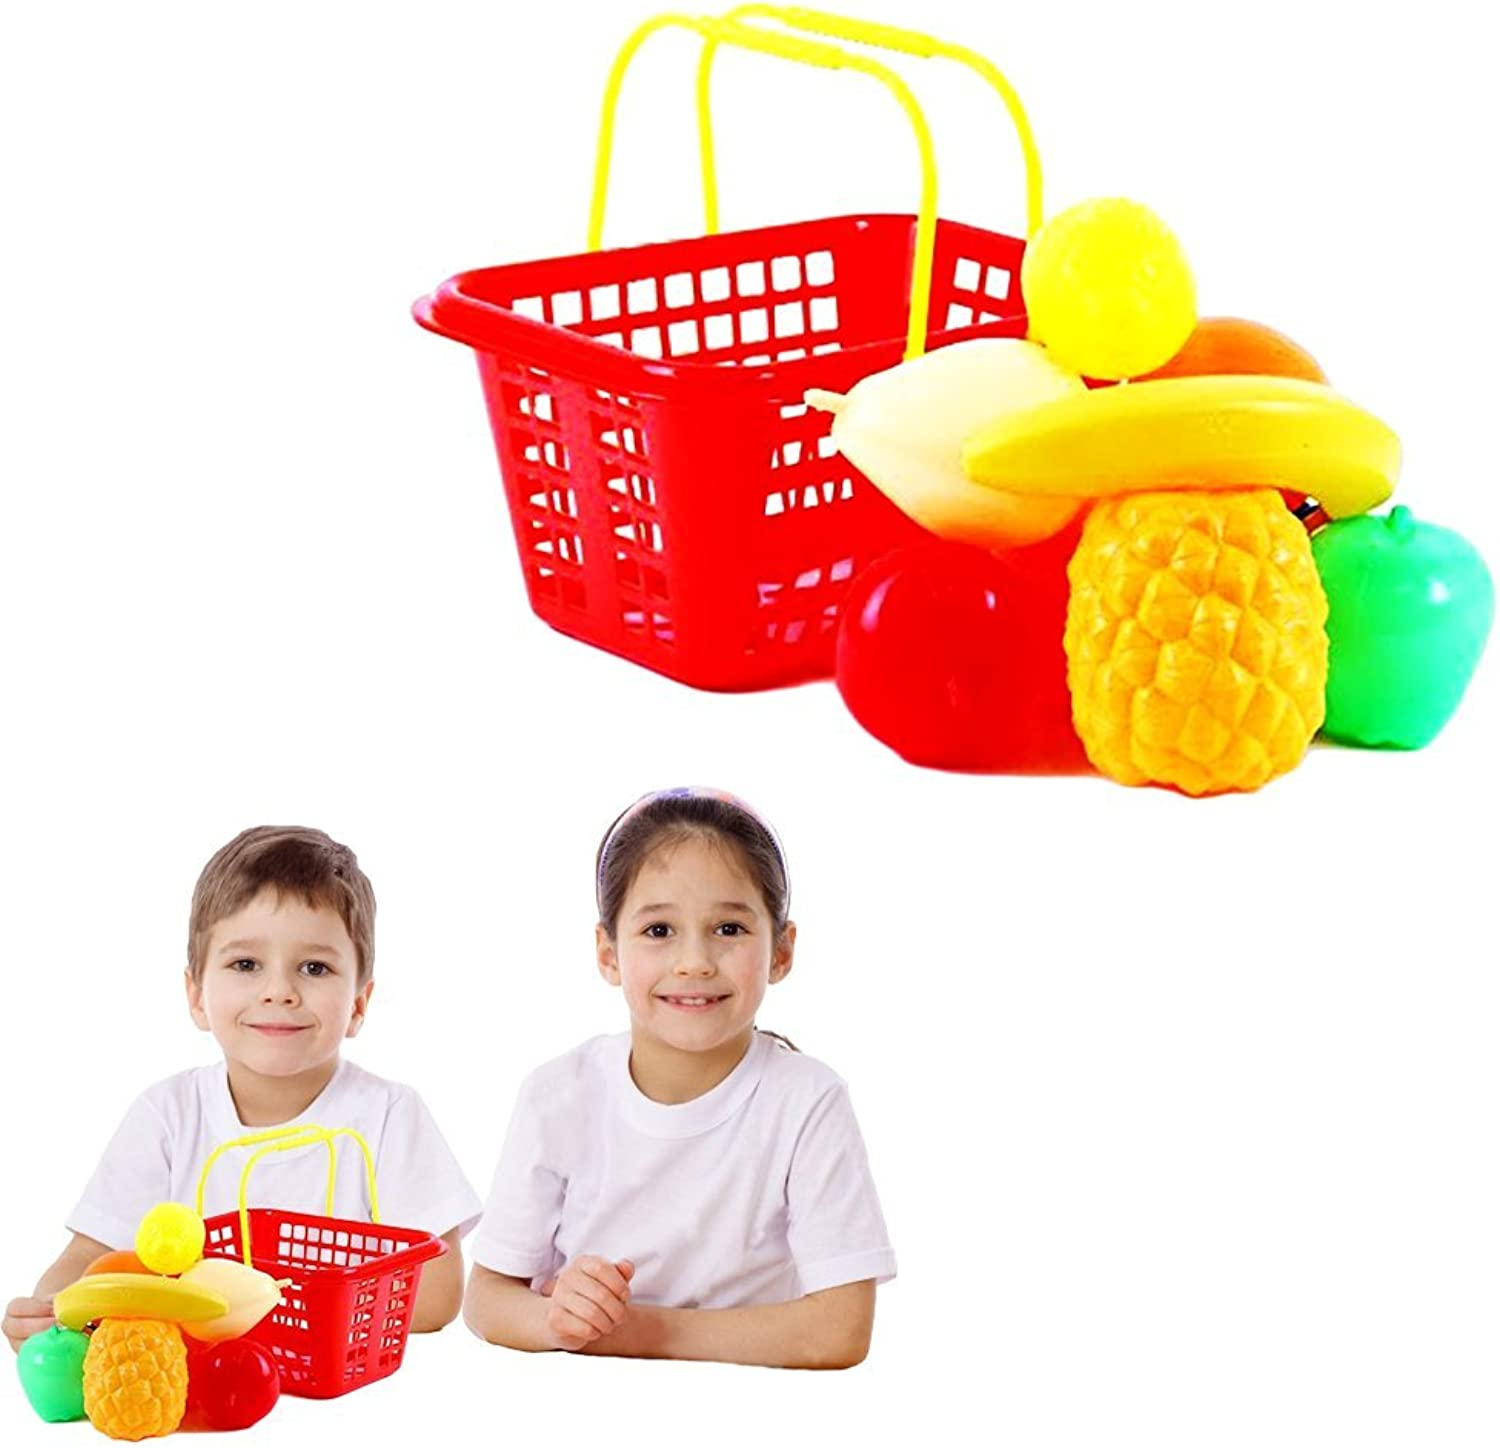 Toy Cubby Pretend Play Party Toy Kid's Shopping Fruit Basket with Fruits Set  9 pieces fruit by Toy Cubby